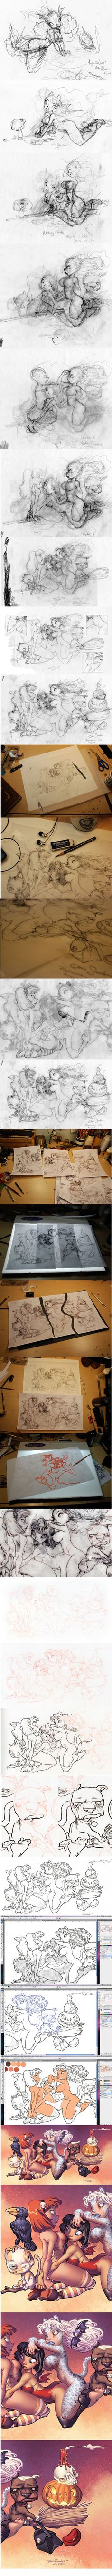 Chris Sanders tutorial.     http://floobynooby.blogspot.com.br/2012/02/chris-sanders-sketch-process.html